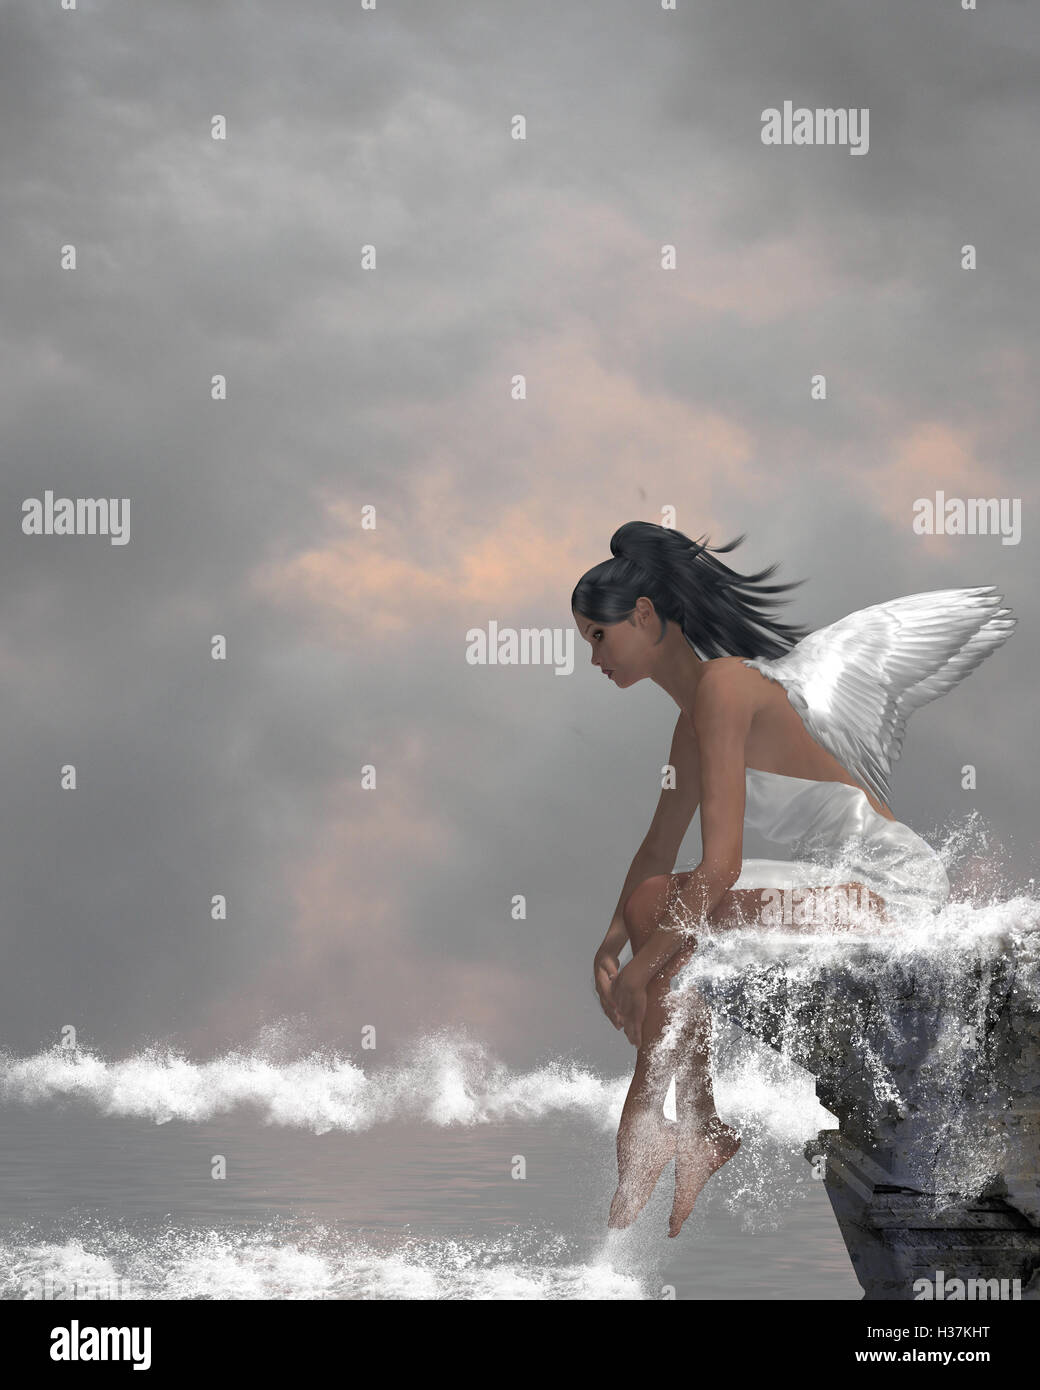 Angel On Water - Stock Image